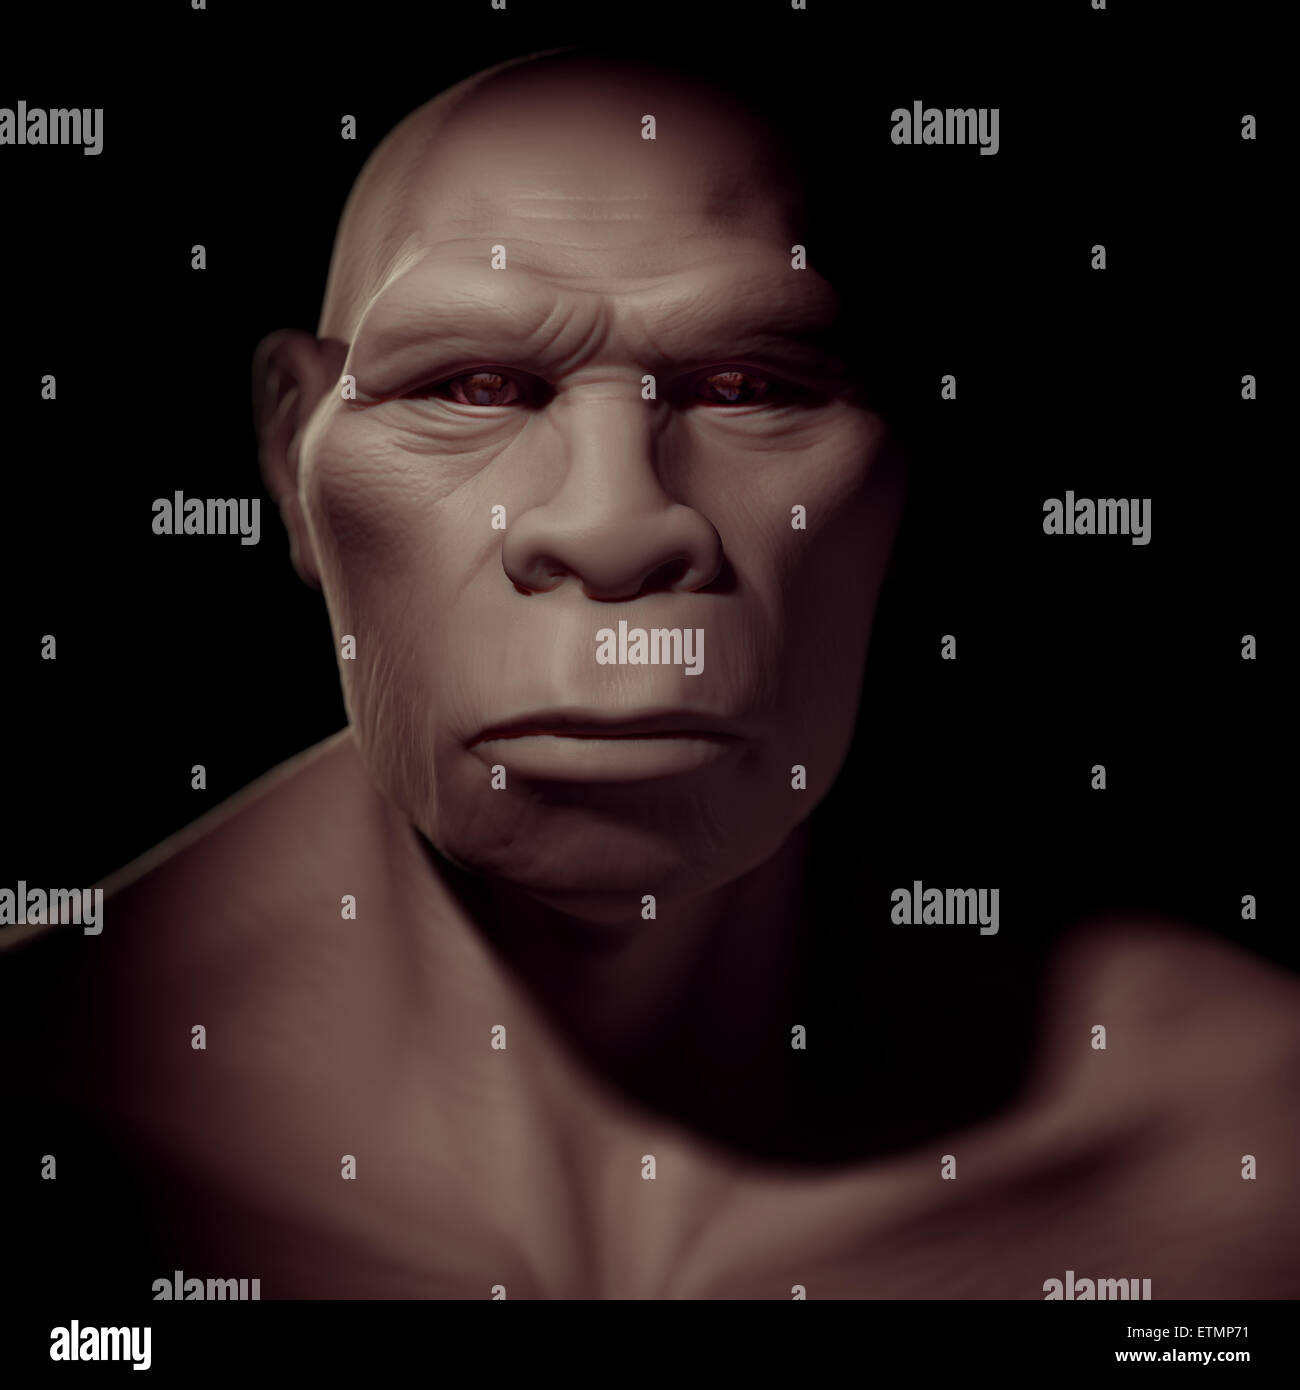 Depiction of a Homo Erectus, an extinct genus of hominids and ancestor to Homo Sapiens. - Stock Image